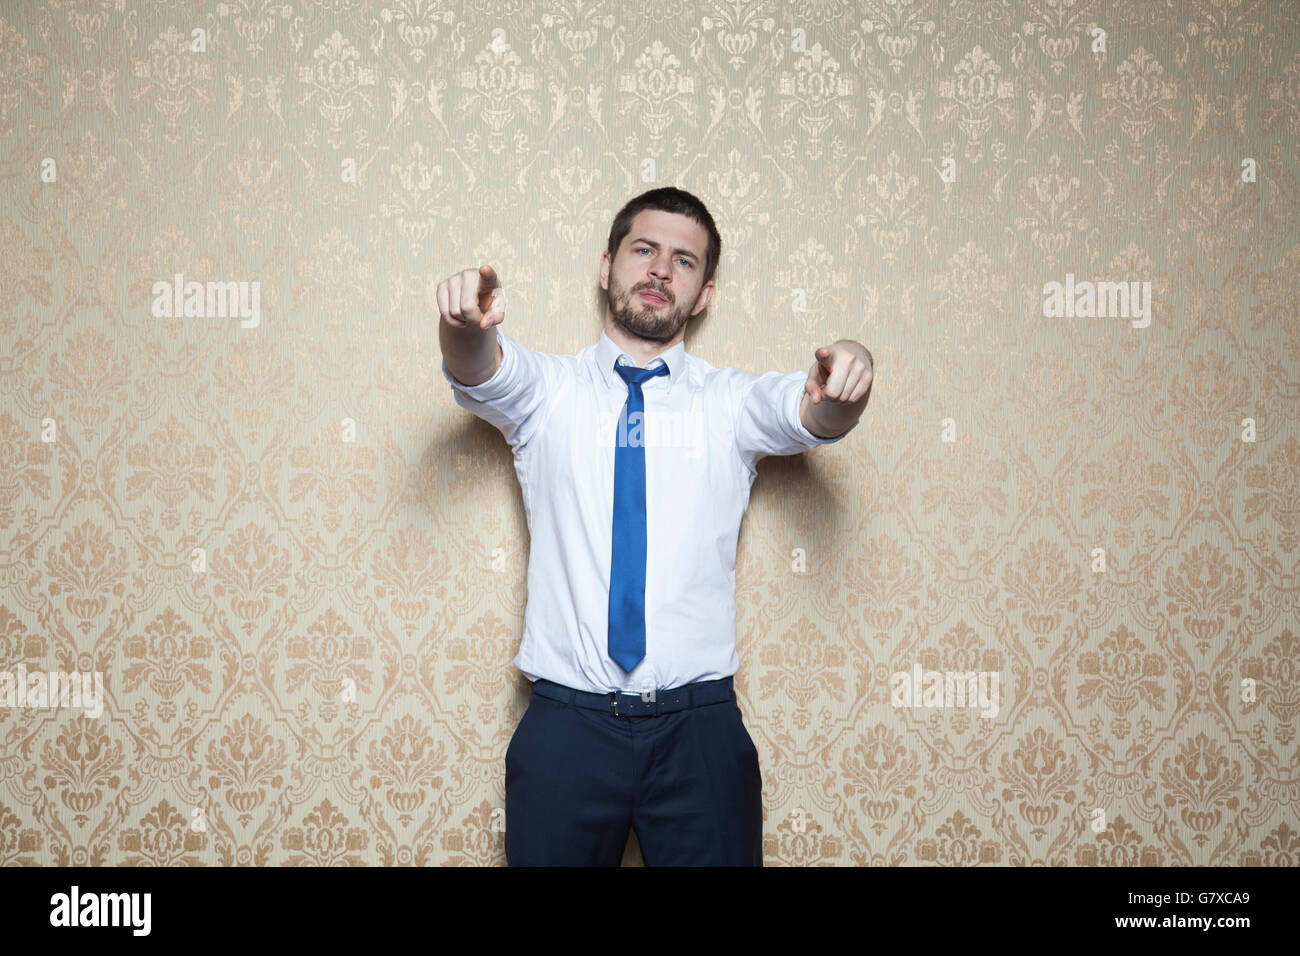 pointing at you - Stock Image